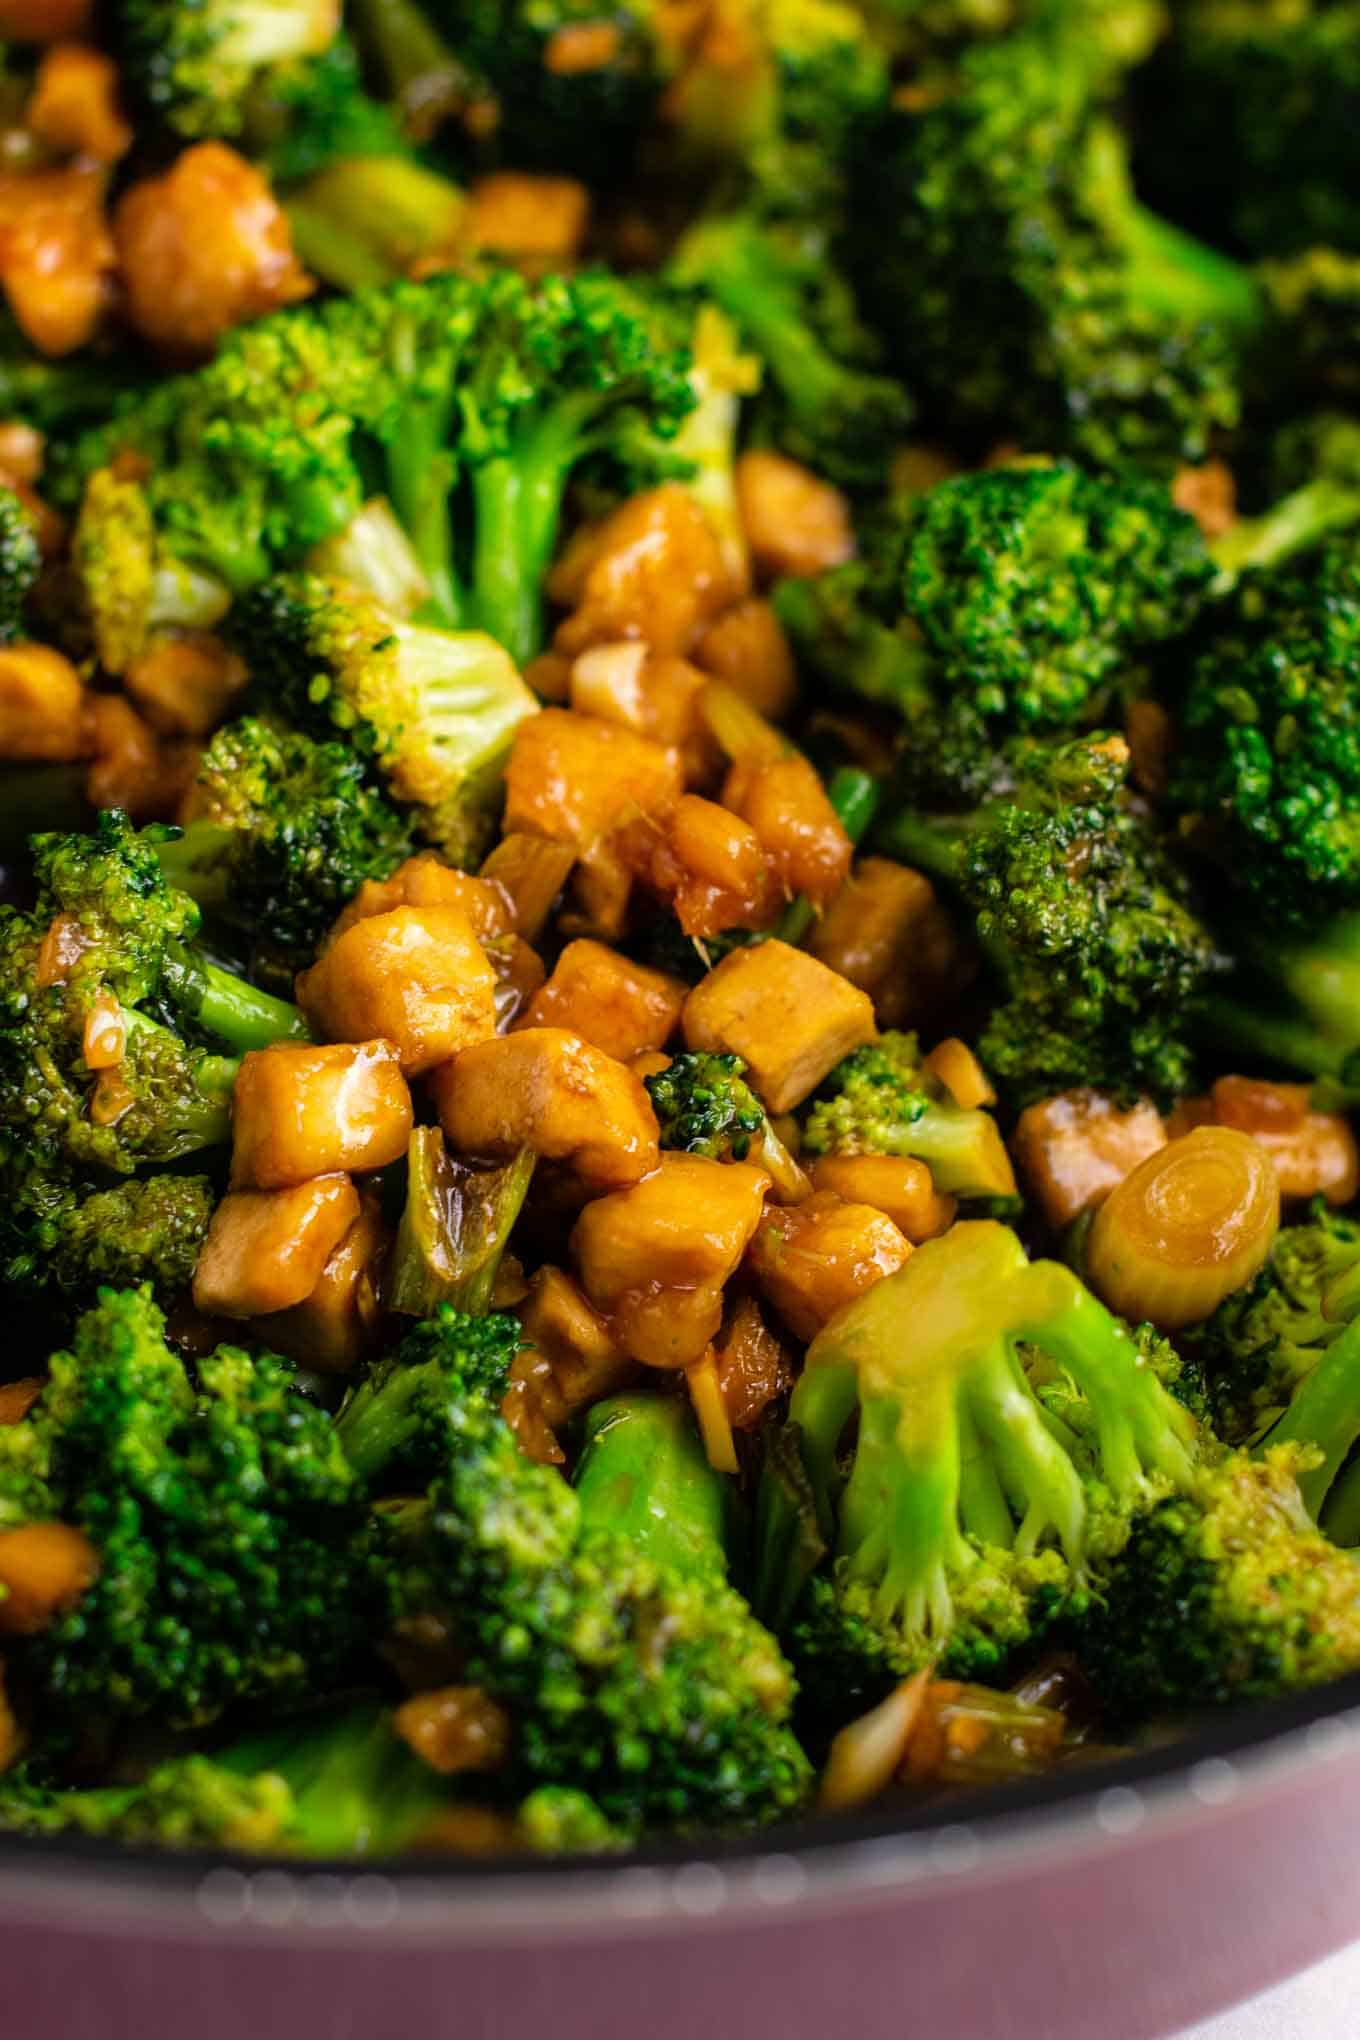 Broccoil garlic tofu stir fry – so easy and tastes amazing! #broccoli #tofu #stirfry #stirfrysauce #vegan #dinner #dinnerrecipe #stirfryrecipe #tofubroccoli #garlictofu